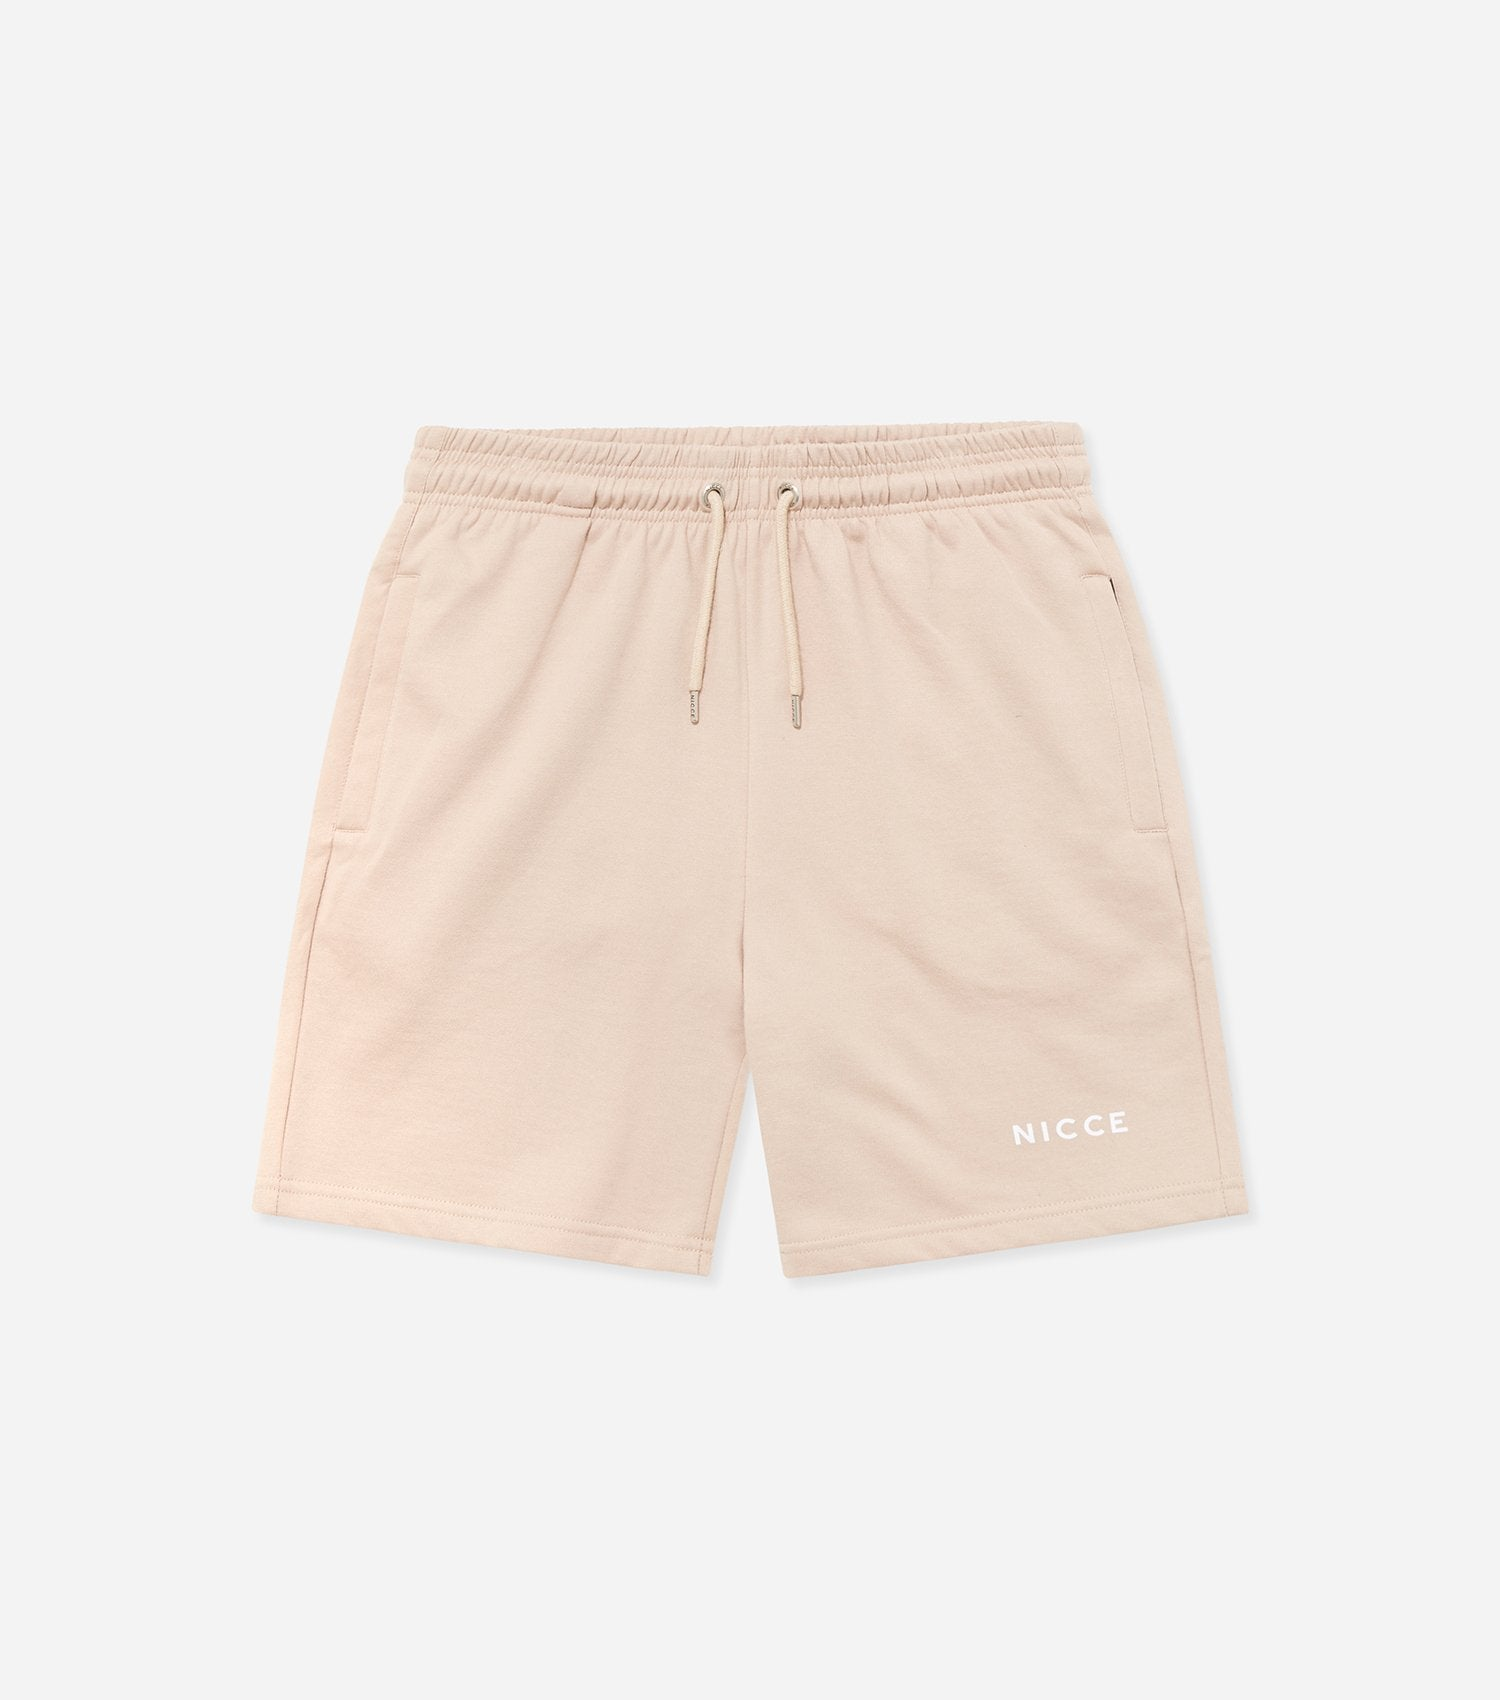 NICCE Mens Original Shorts | Sand, Shorts